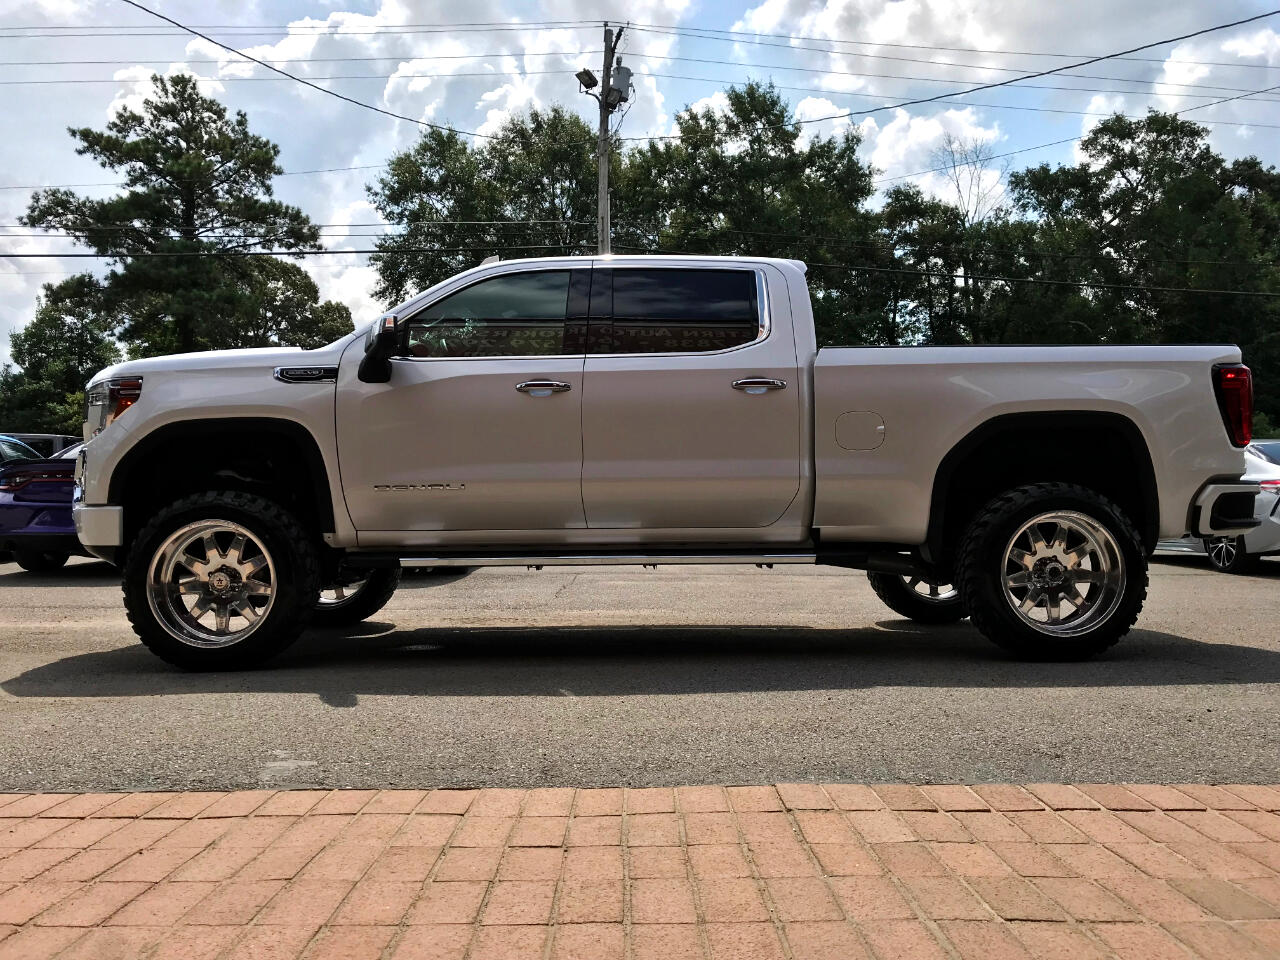 2019 GMC Sierra 1500 DENALI CREW CAB 4WD CUSTOM LIFTED